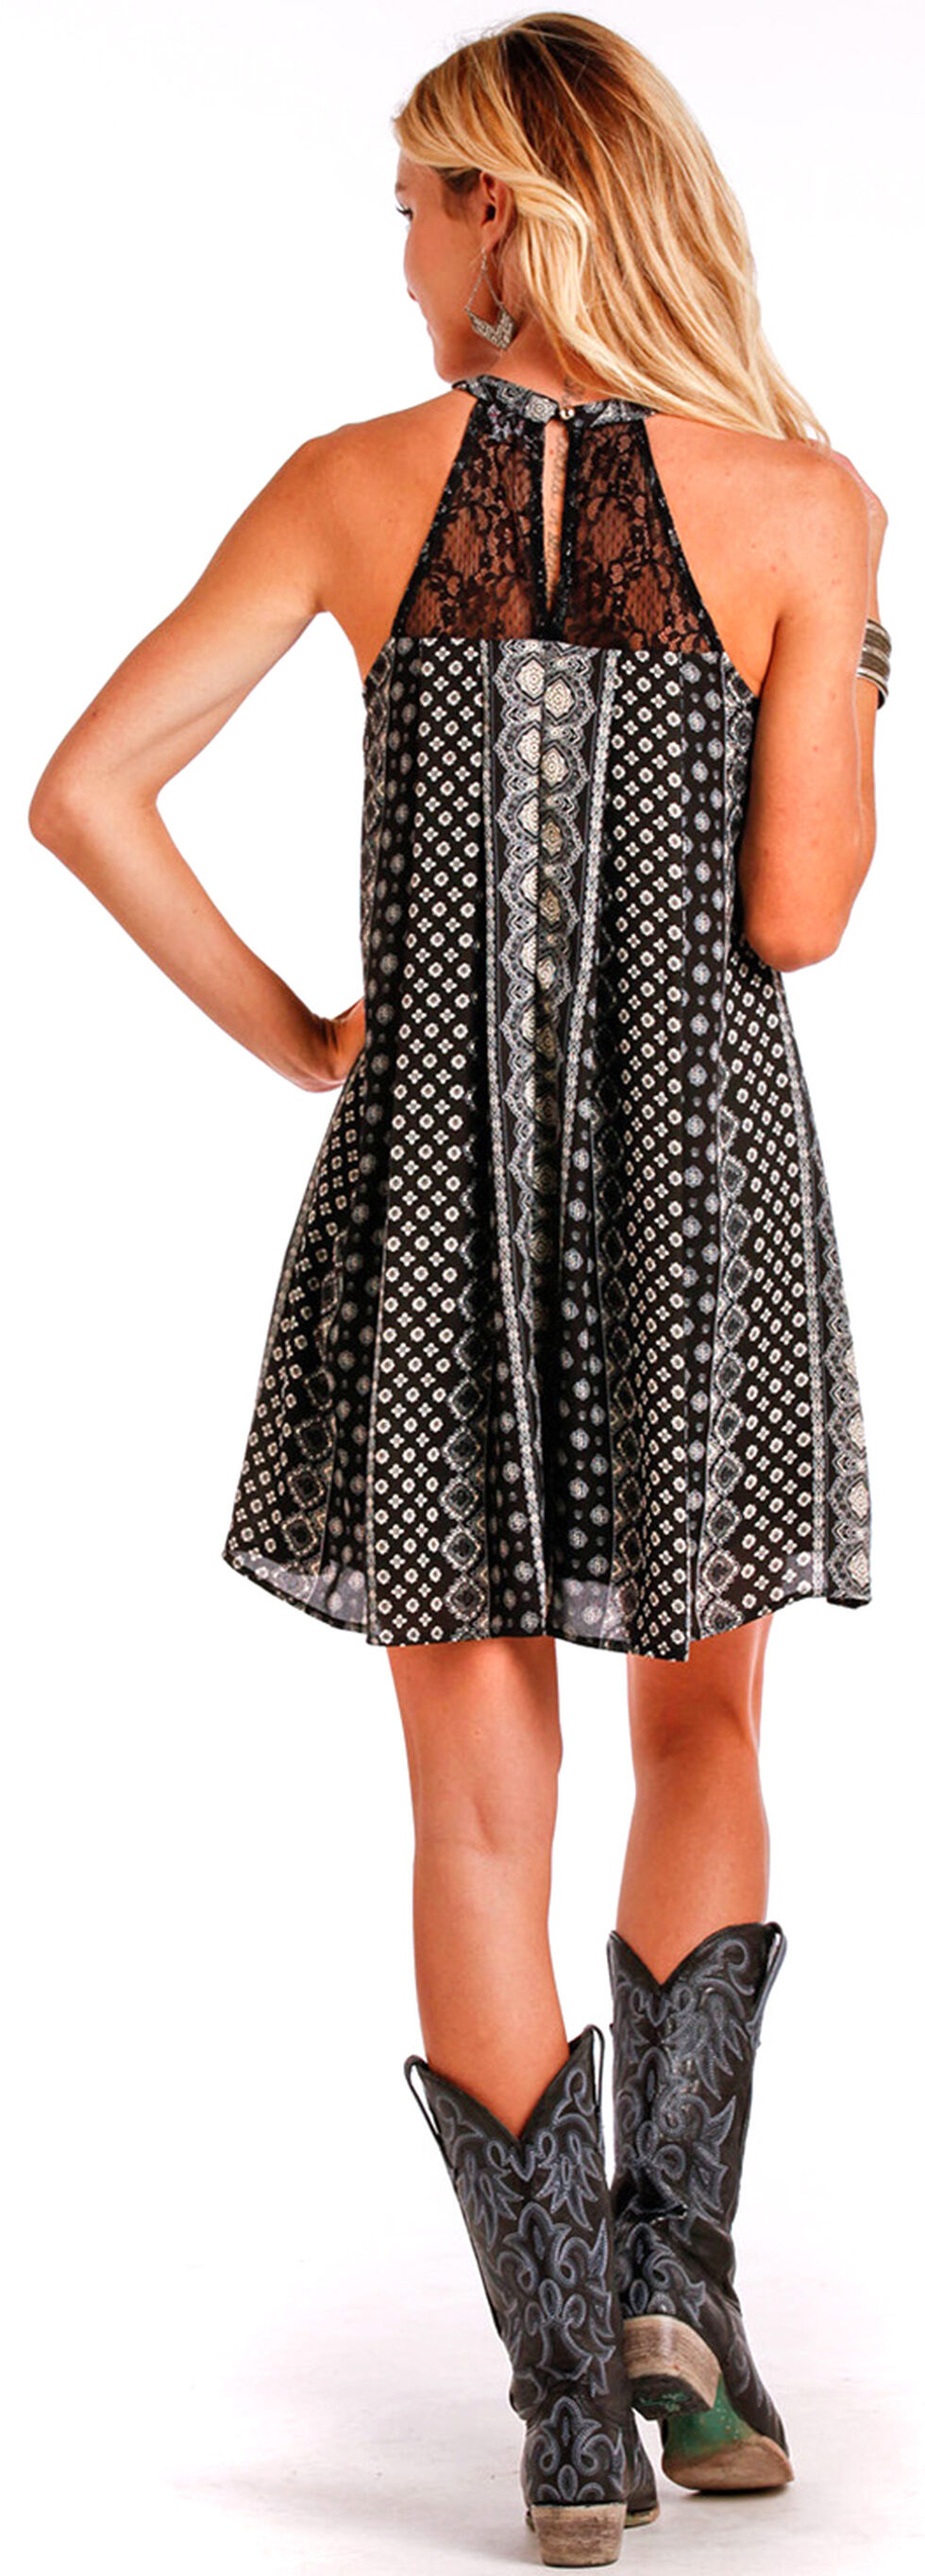 Panhandle Slim Women's Black Print Halter Dress, , hi-res